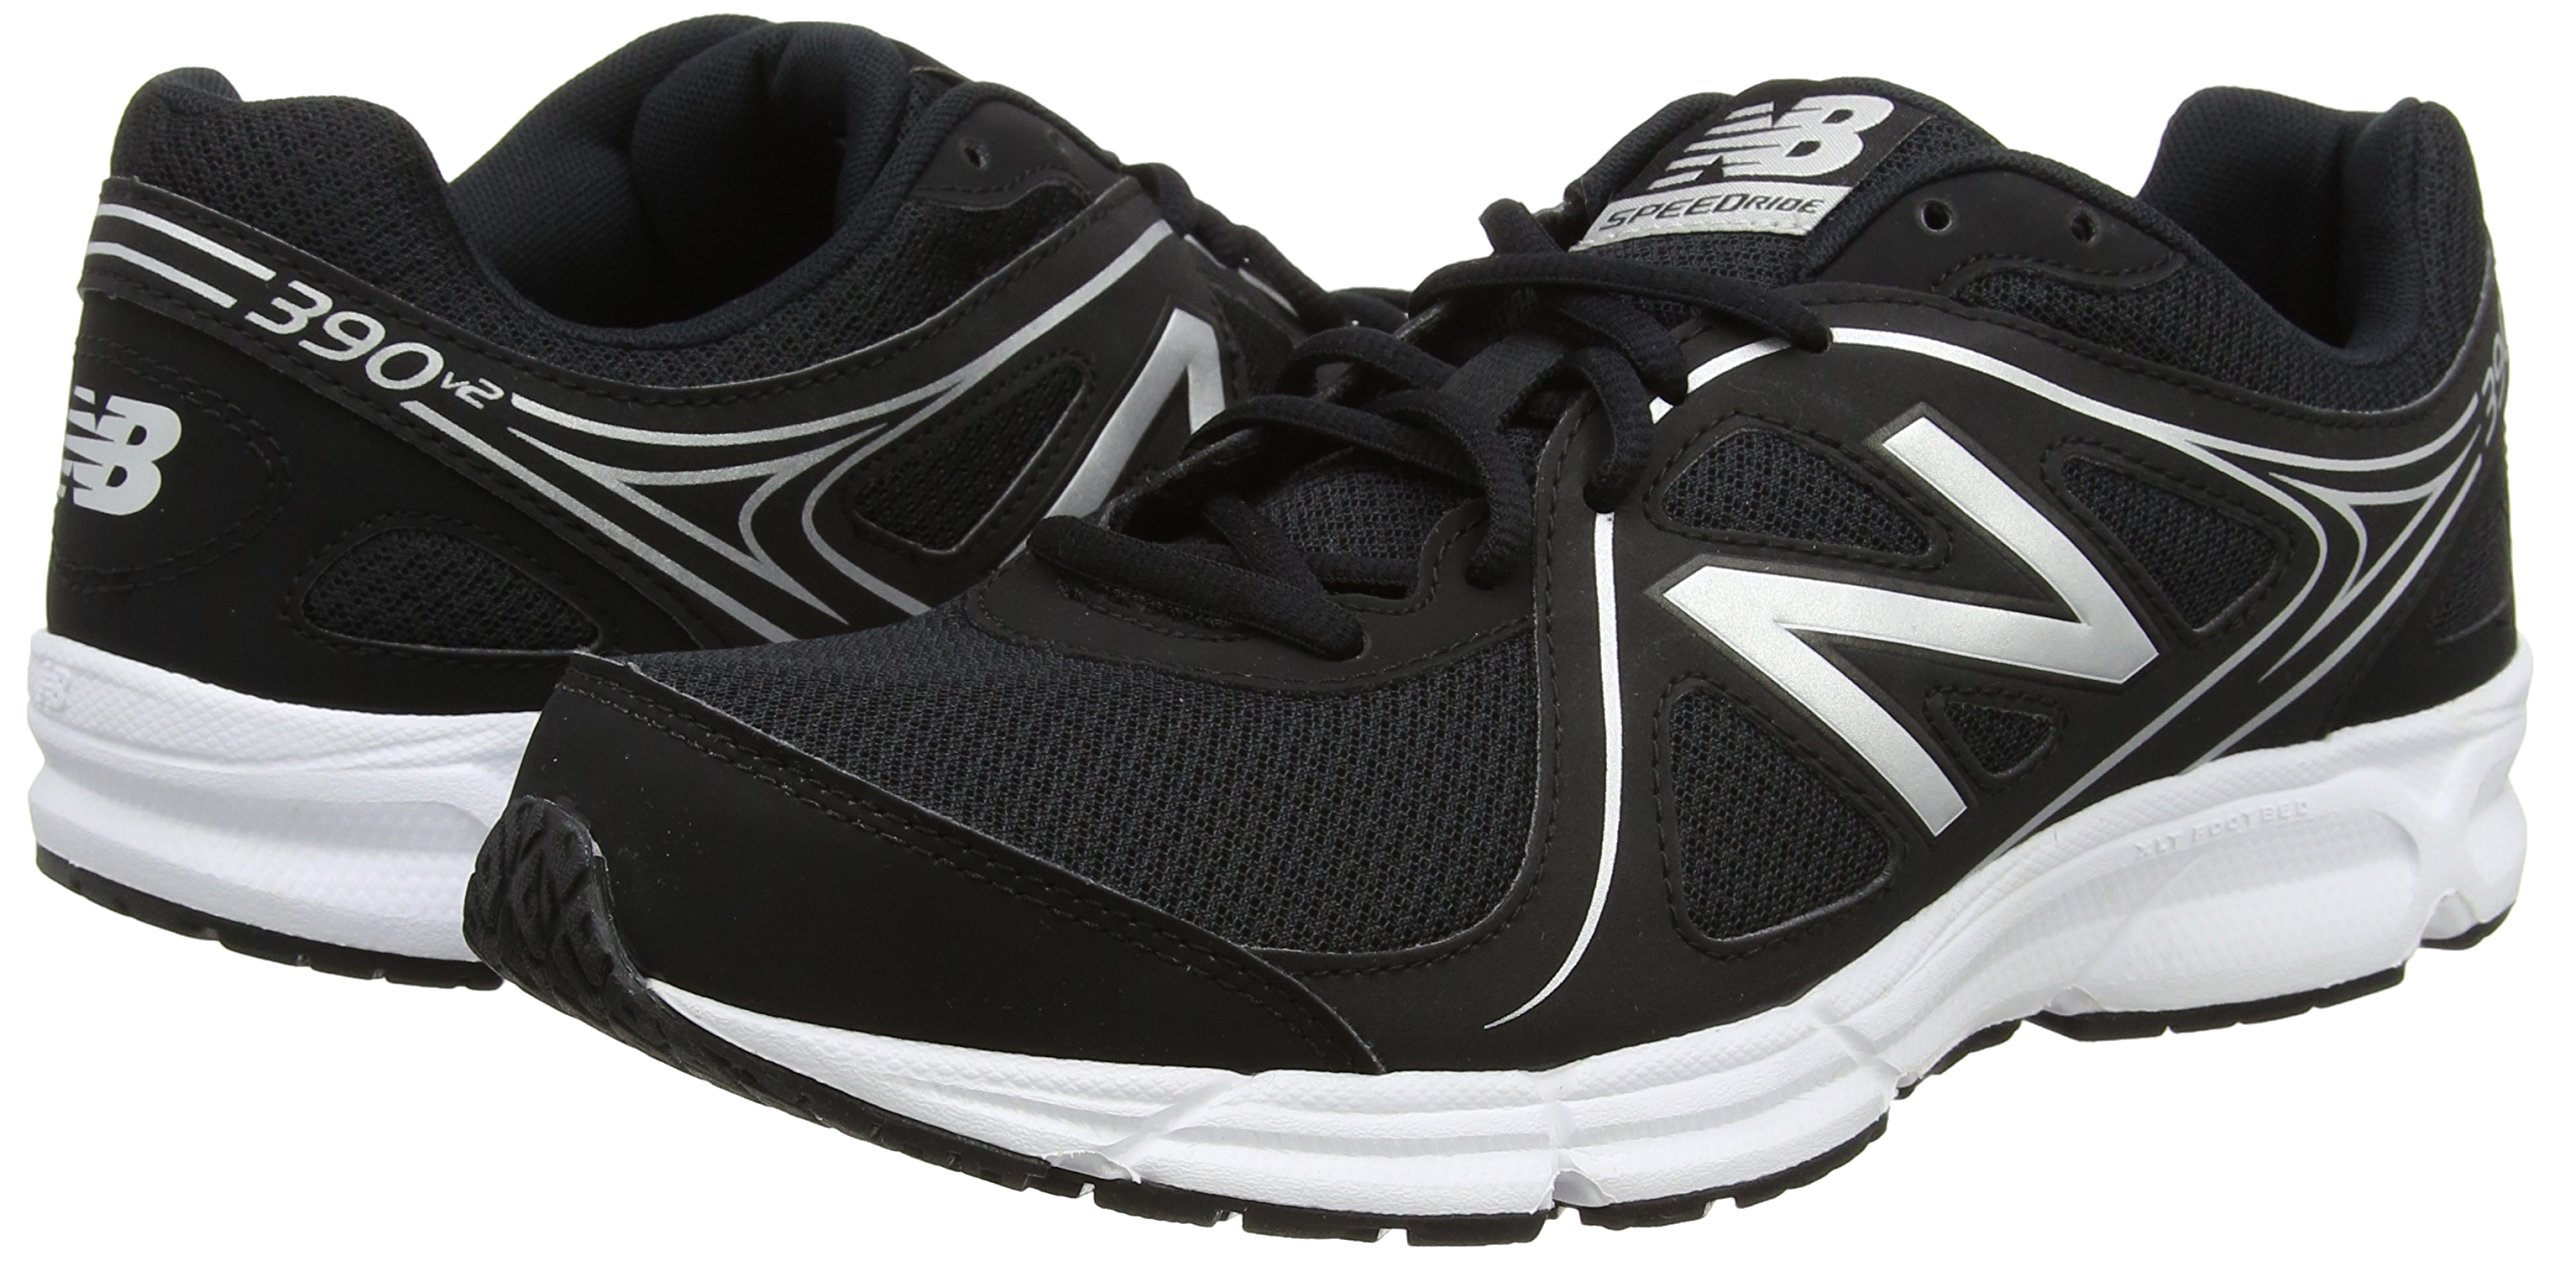 New Balance M390Bw2, Men's Running Shoes | Outdoor Equipment Review